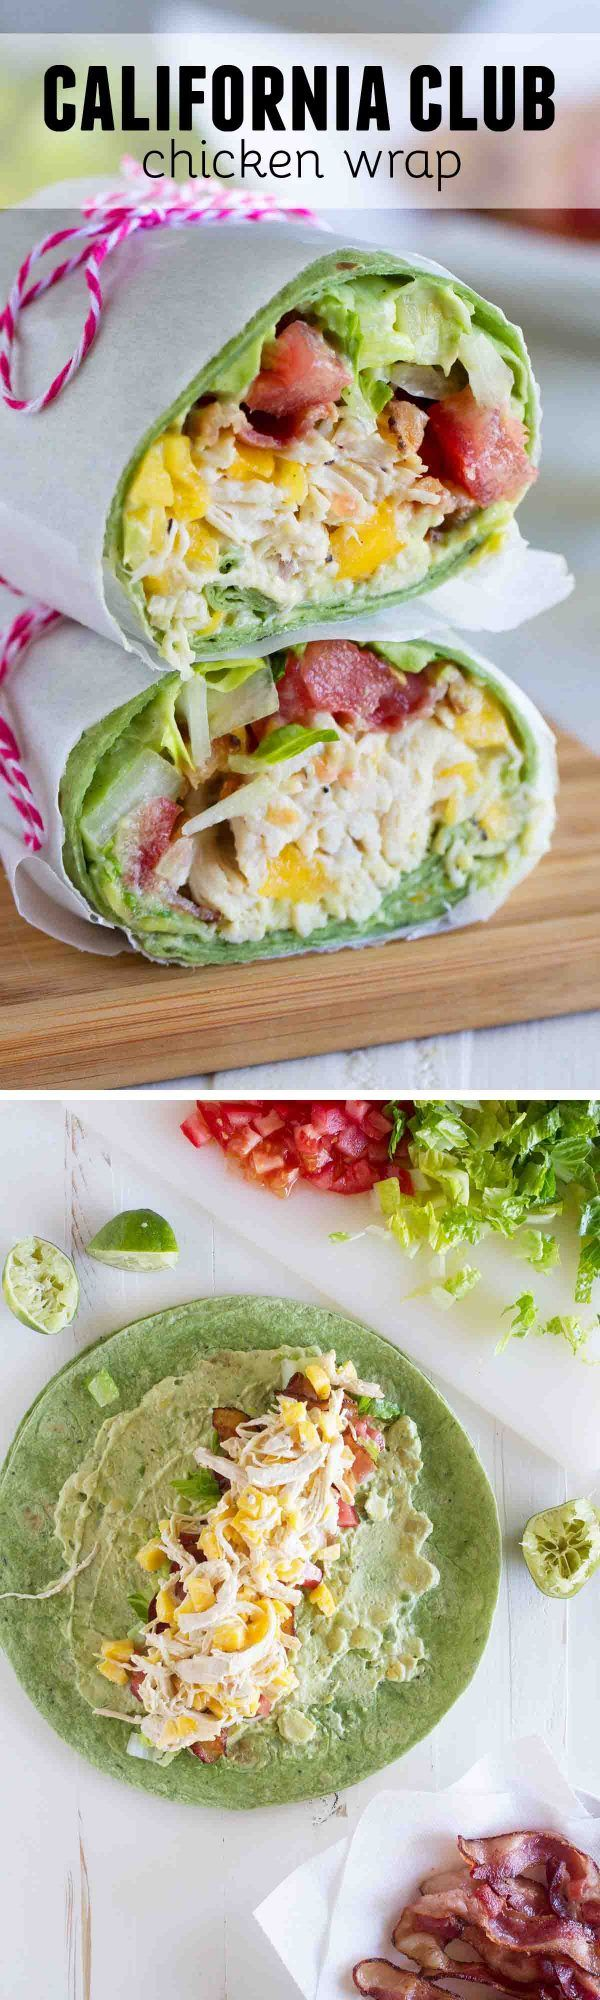 Shredded chicken, mango, avocado and bacon are the stars in this easy California Club Chicken Wrap that is perfect for a weeknight. (Chicken Wraps)